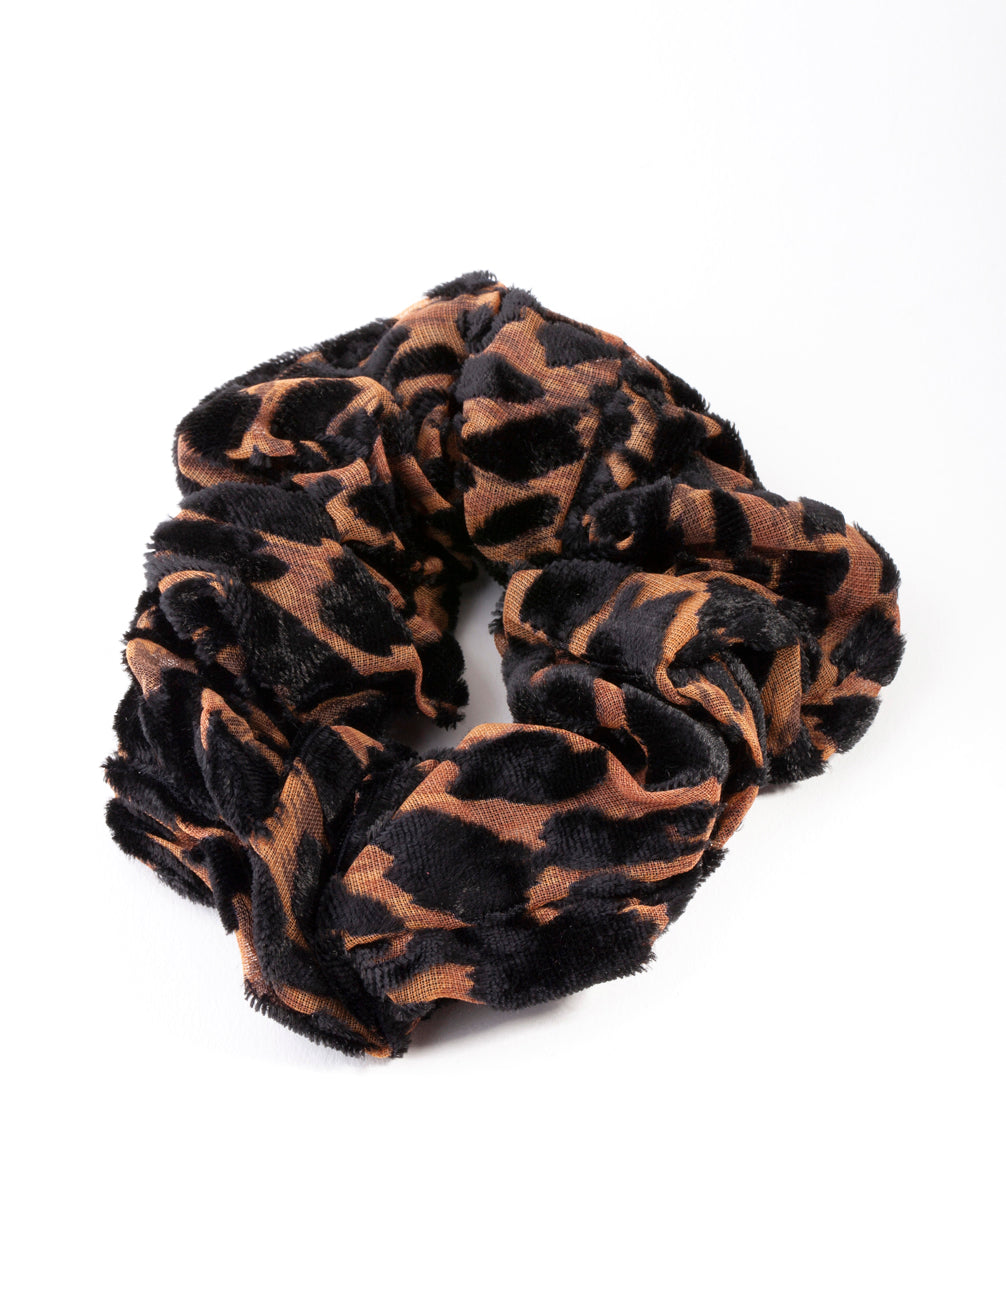 Brown and Black Velvet Leopard Scrunchie